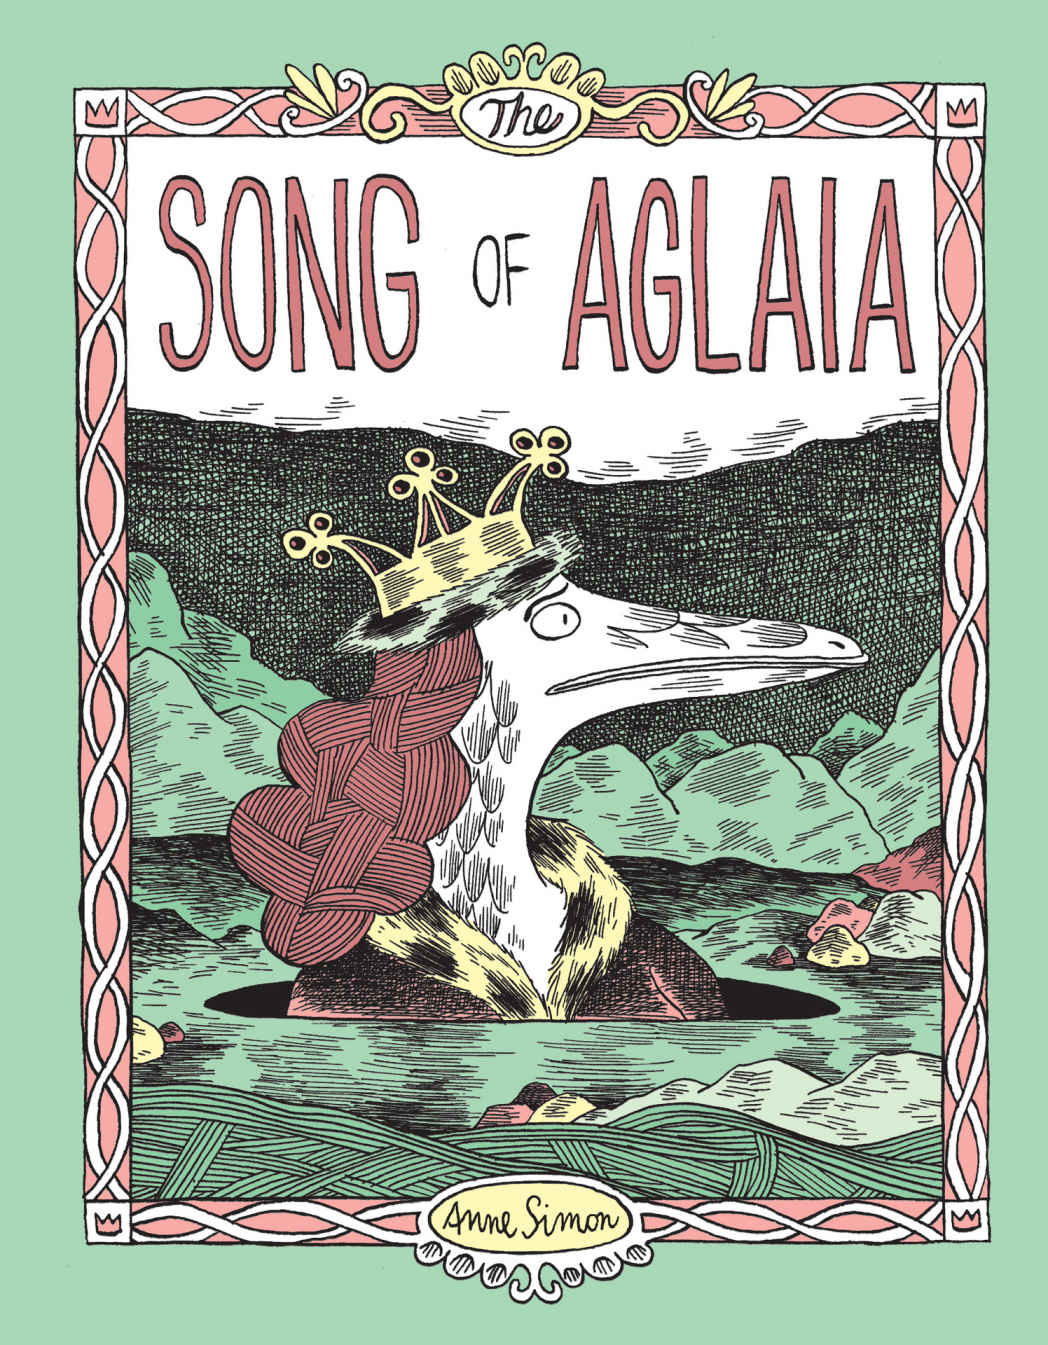 'The Song of Aglaia' review: exploring the intricacies of modern feminism (with dancing horses)